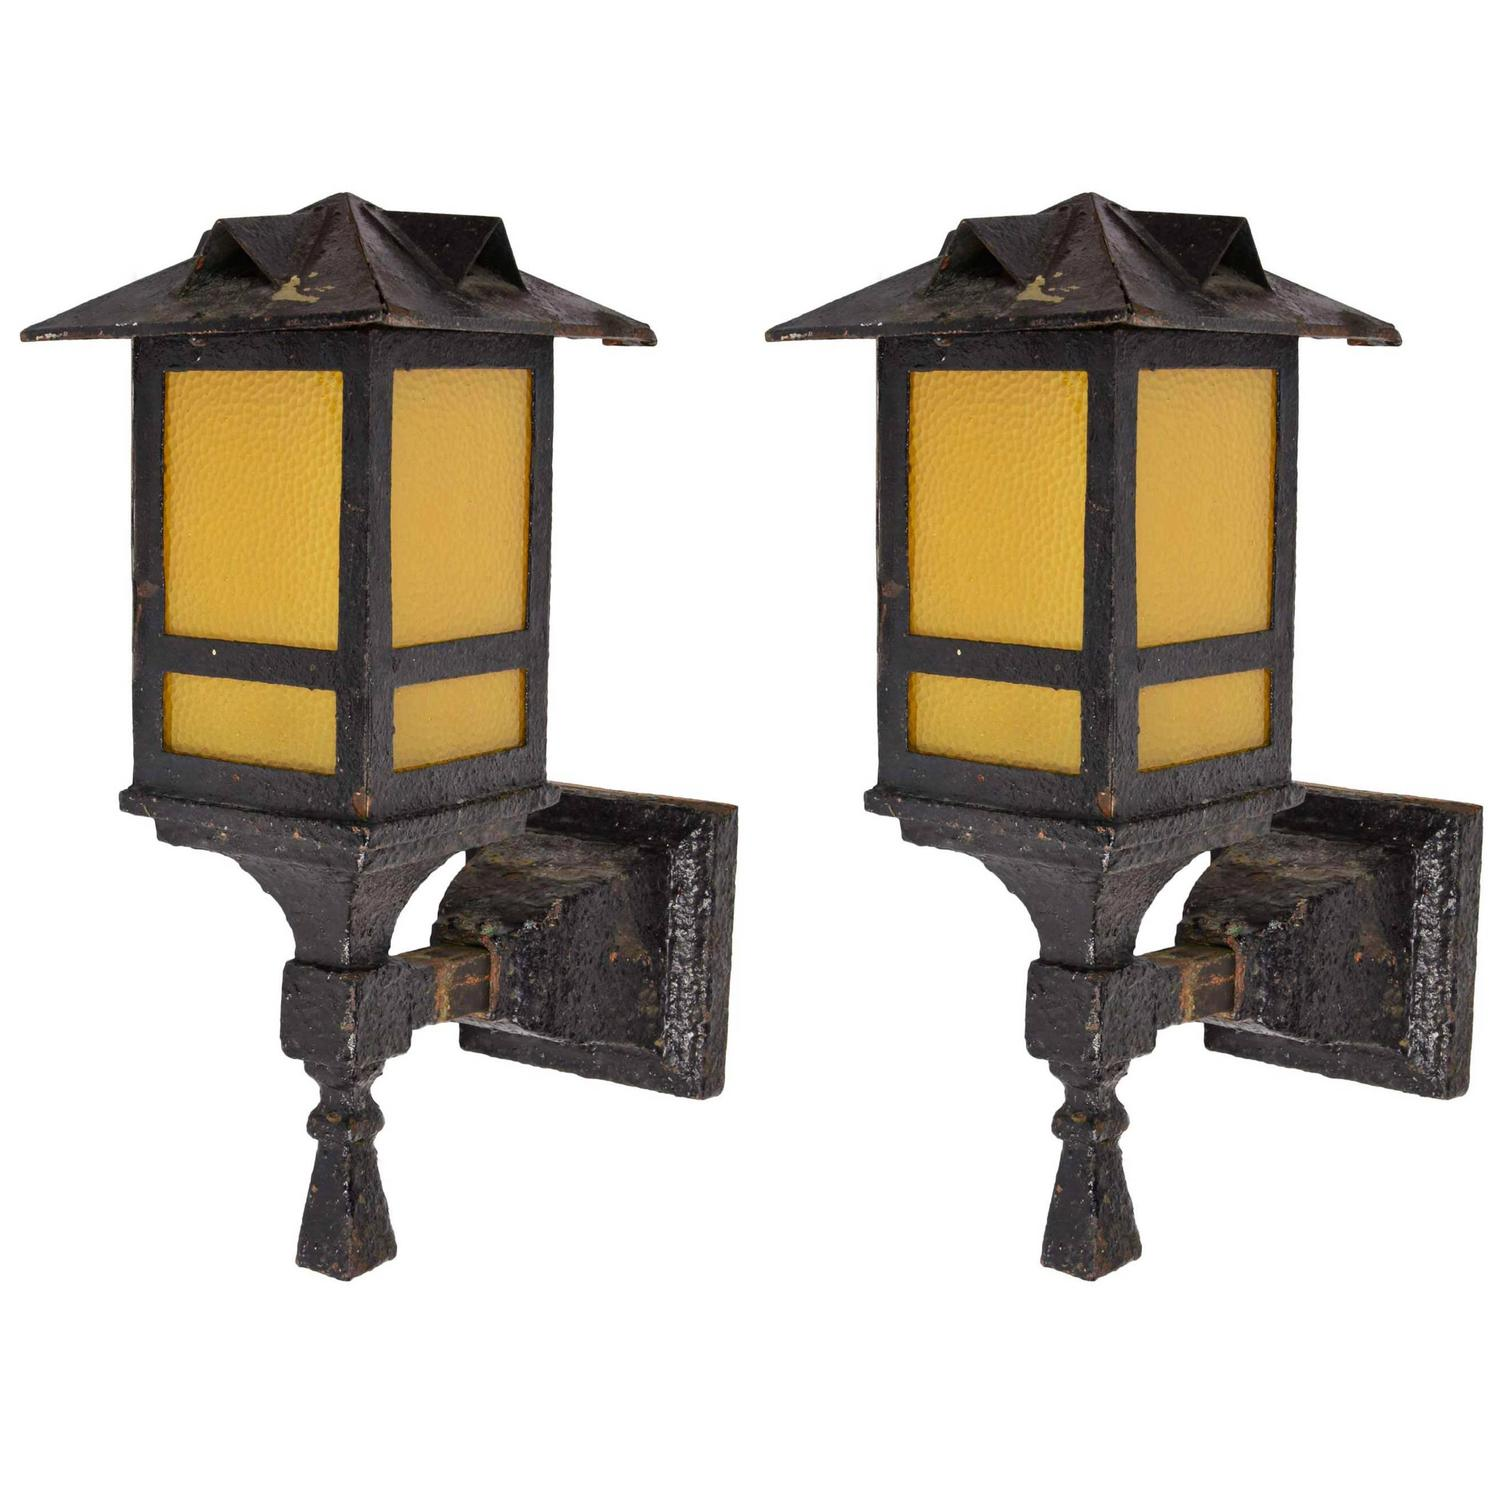 Outdoor Lighting Fixtures Arts And Crafts Original Iron Arts And Crafts Exterior Sconce Pair With Hammered Amber Glass